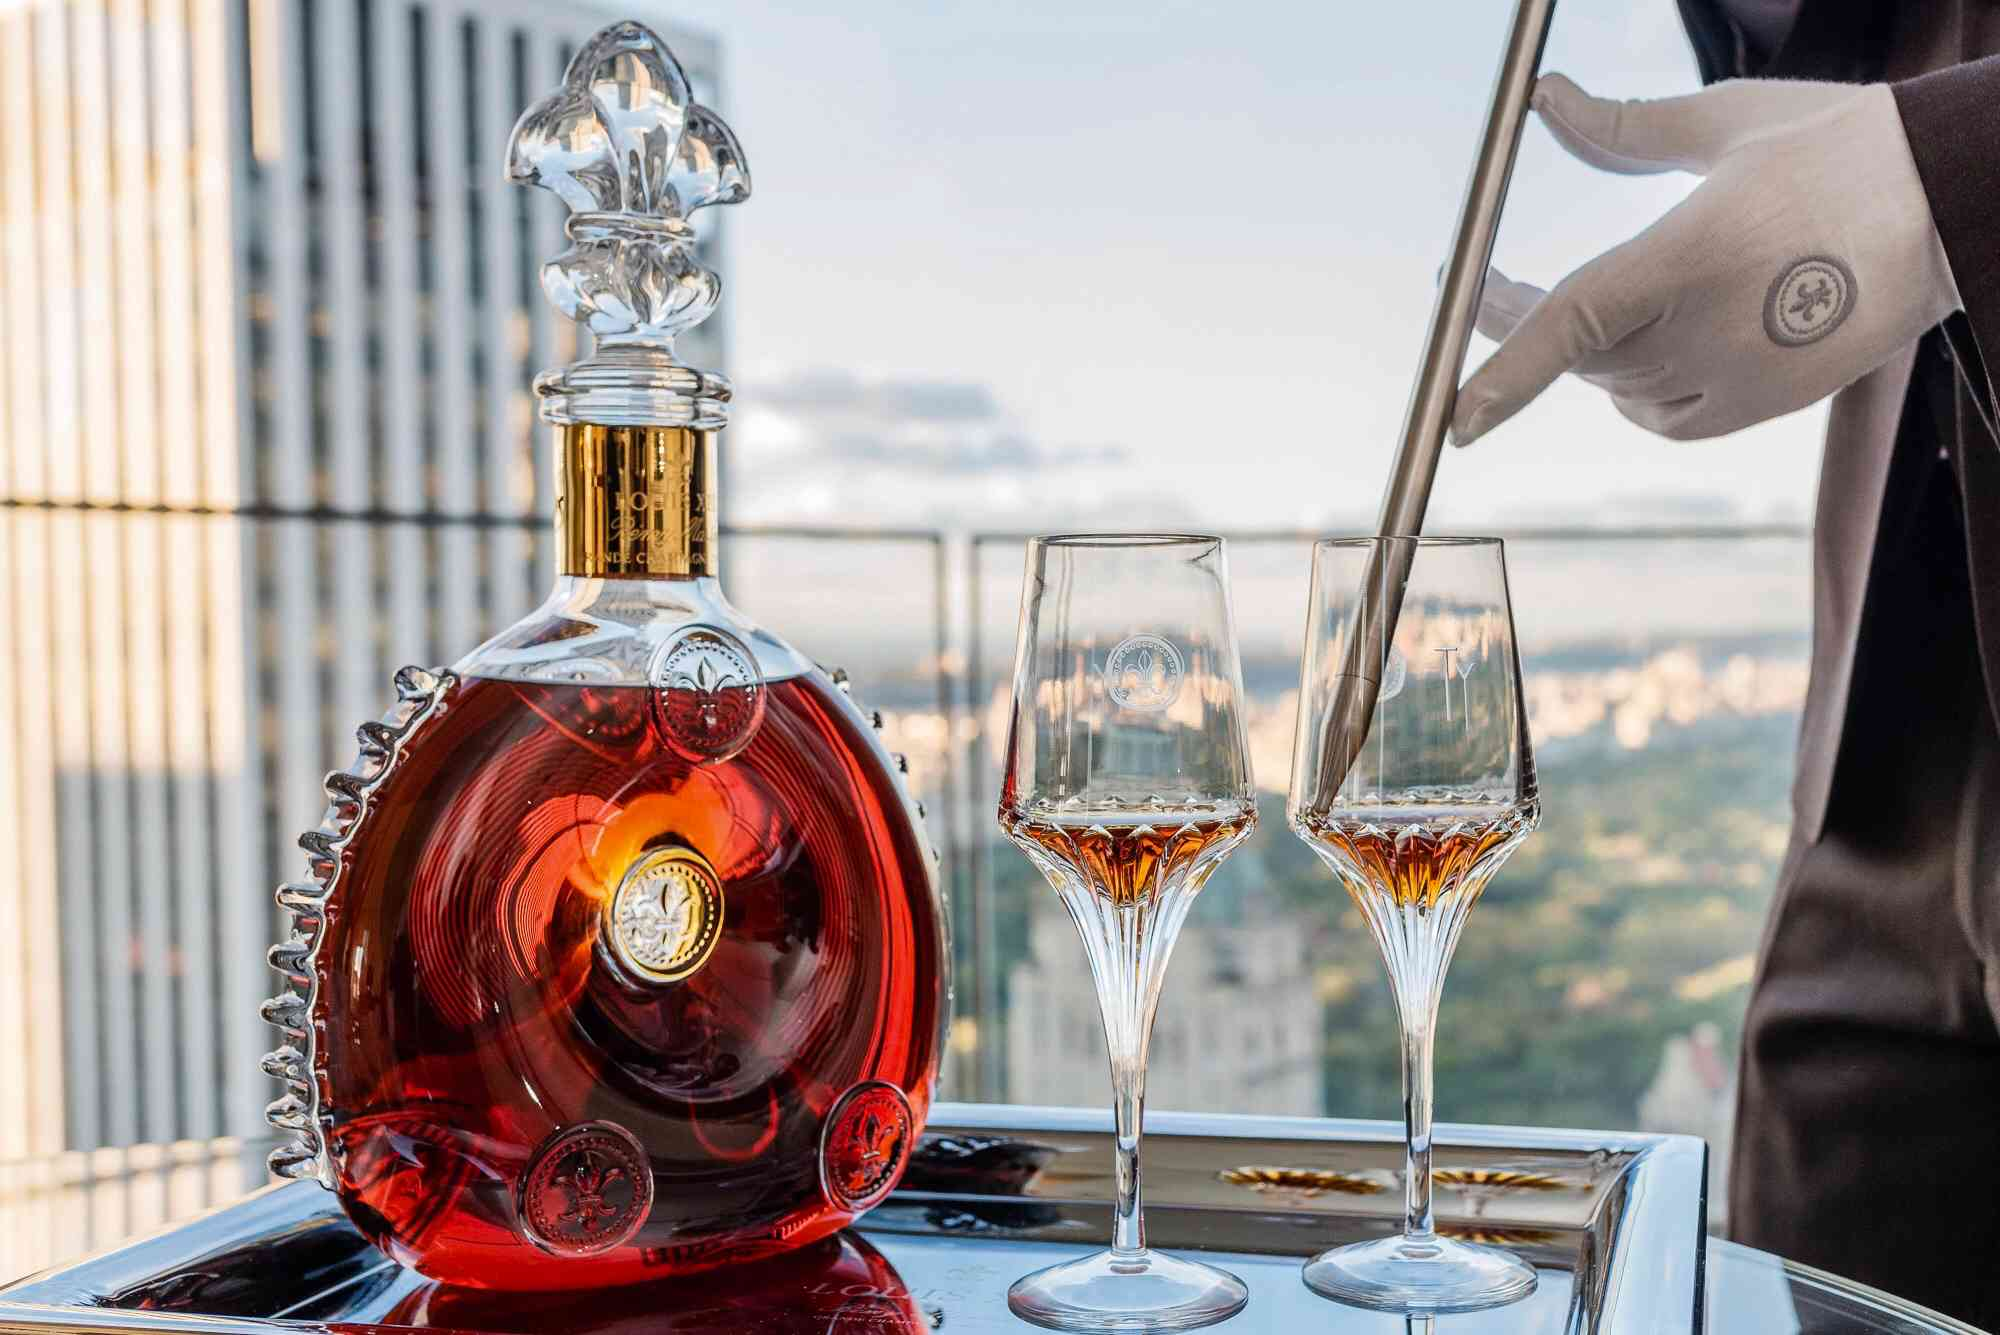 Louis XIII Cognac Experience in the Ty Warner Penthouse Suite Four Seasons Hotel New York